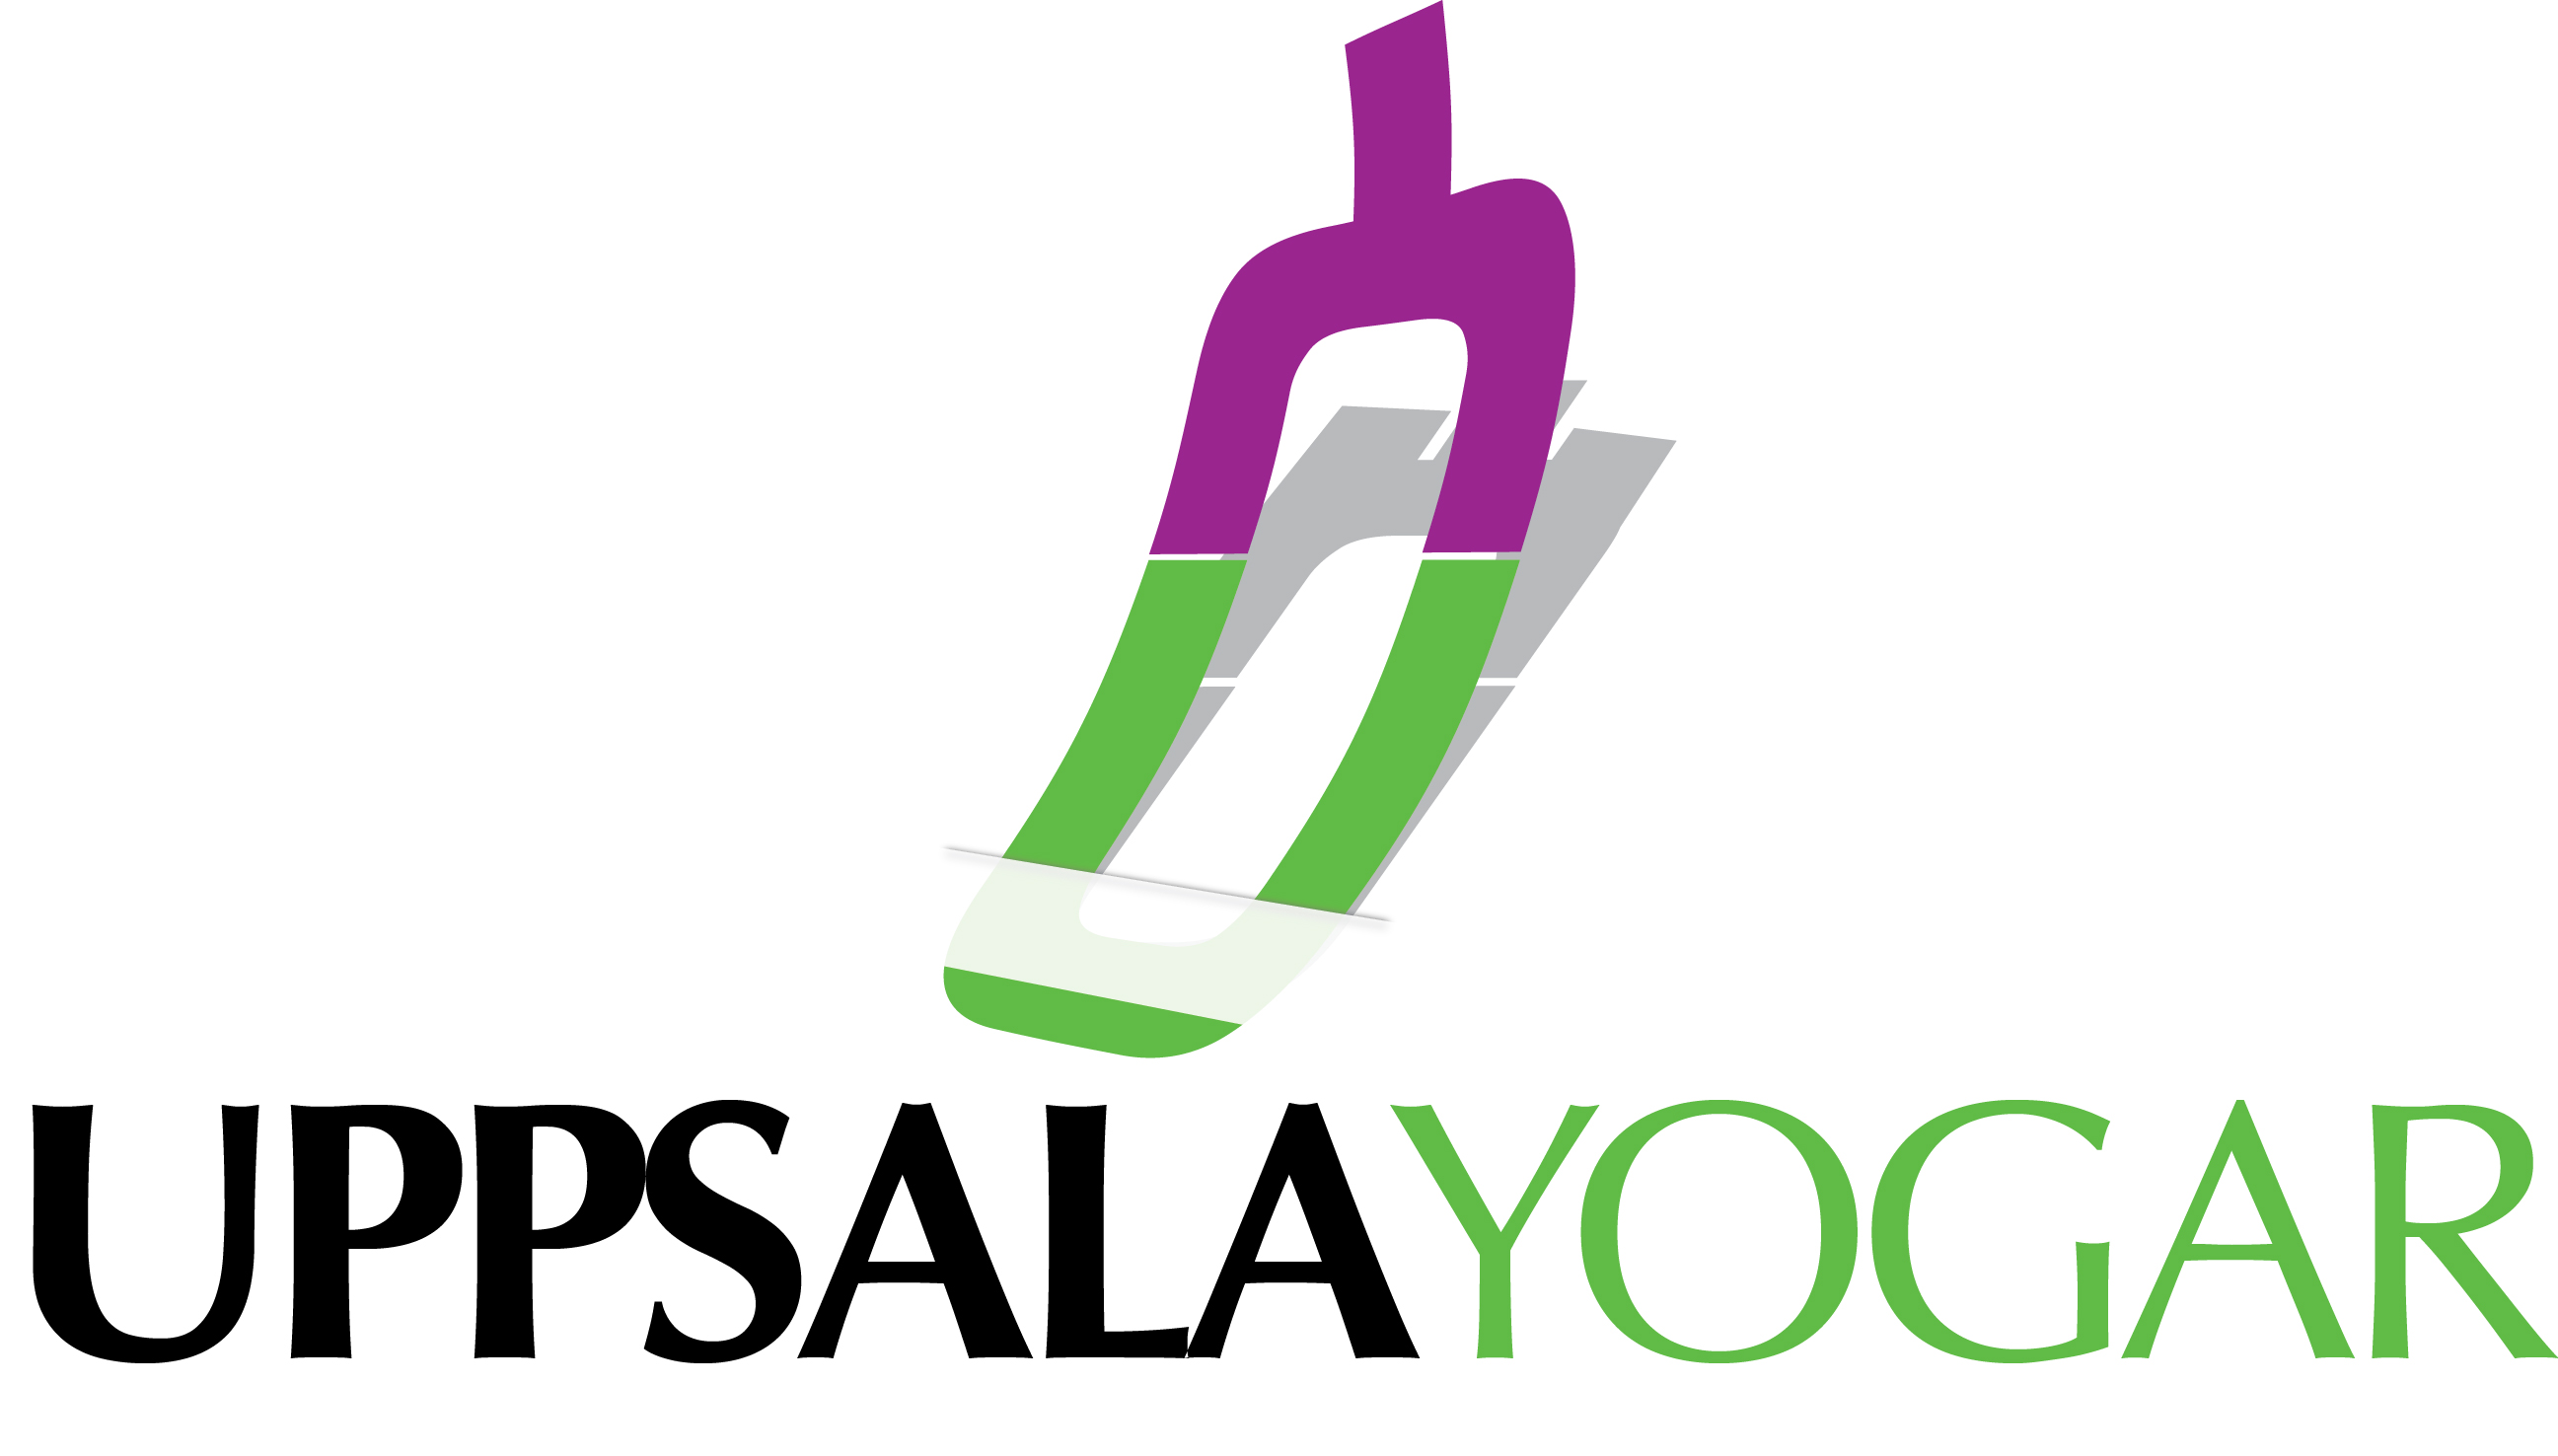 Logo Design by Waseem Haider - Entry No. 53 in the Logo Design Contest Unique Logo Design Wanted for Uppsala Yogar.